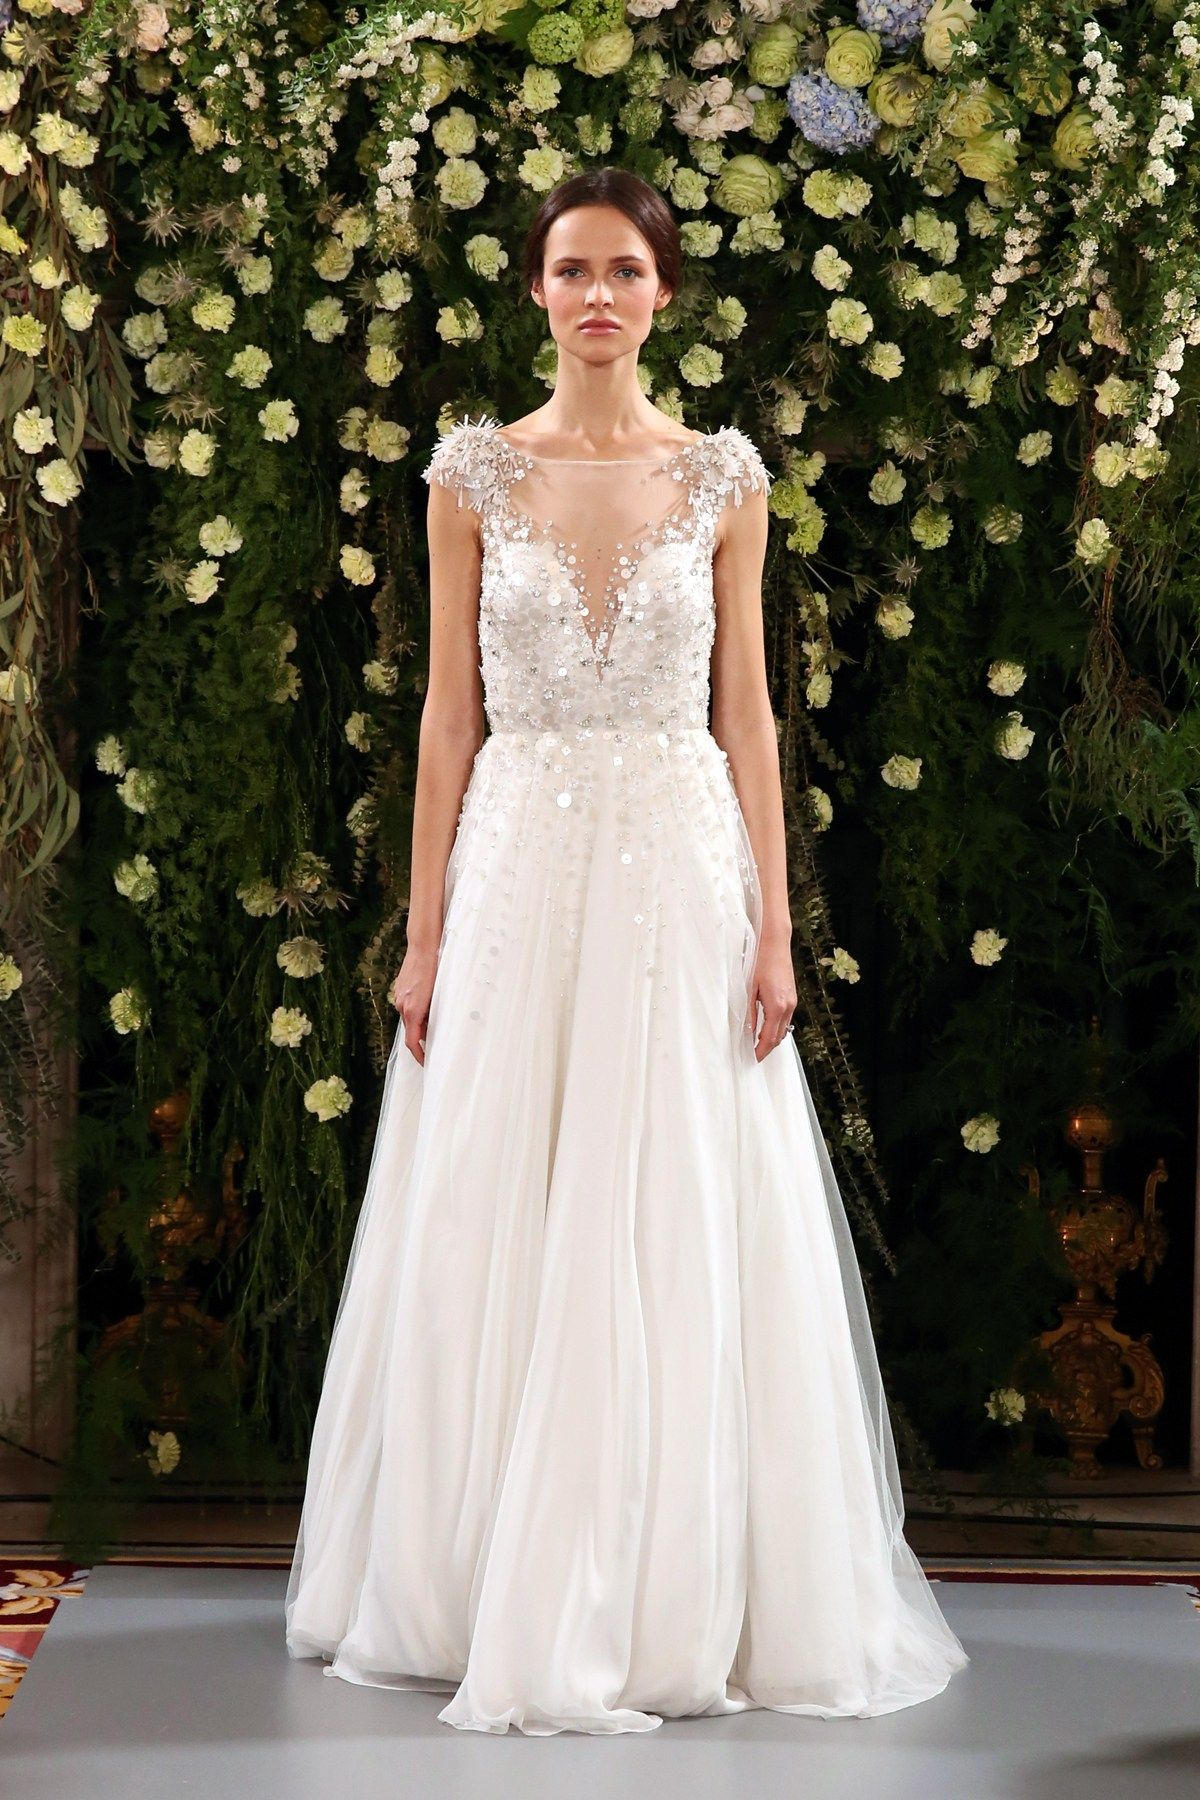 Trying on wedding dresses for the first time  Jenny Packham Introduces her  Bridal Fashion Collection  clasic